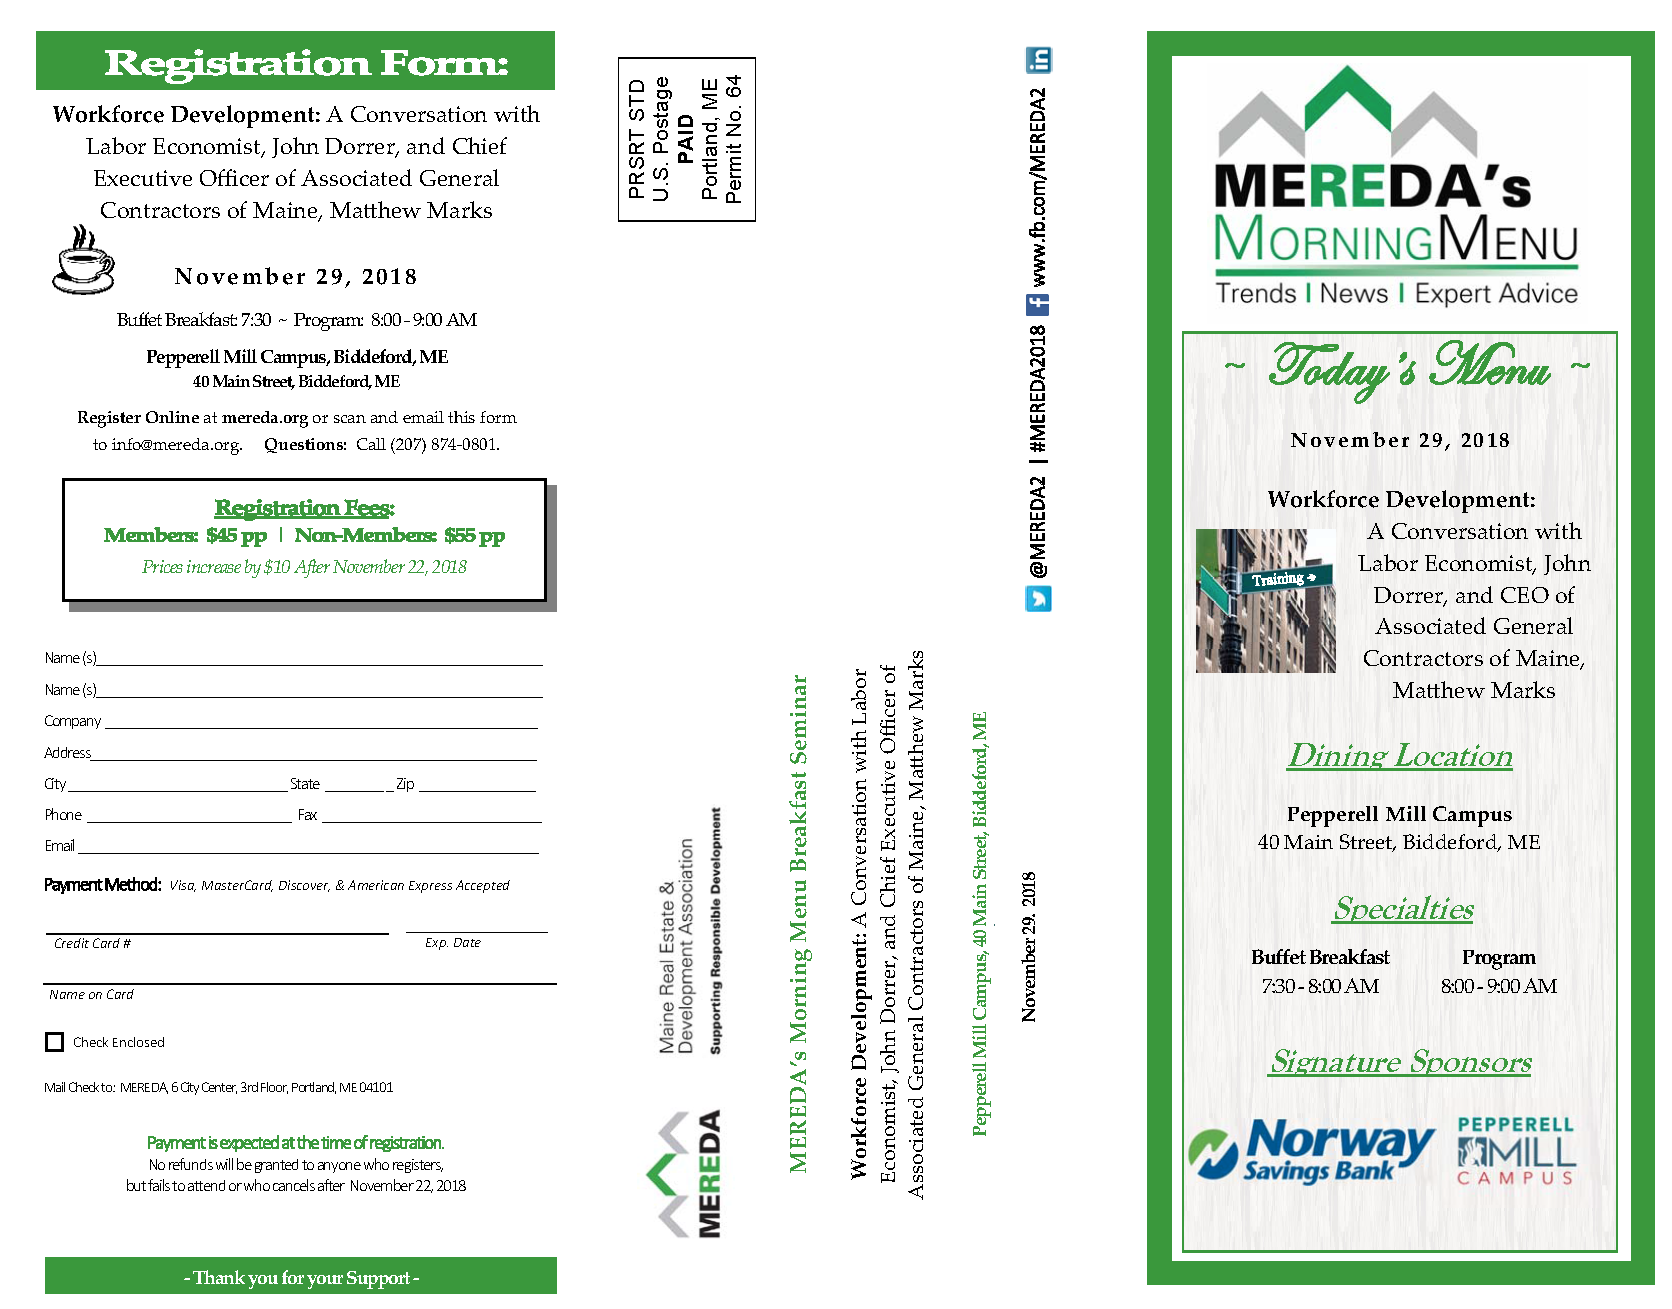 Event Mailer Yrk County